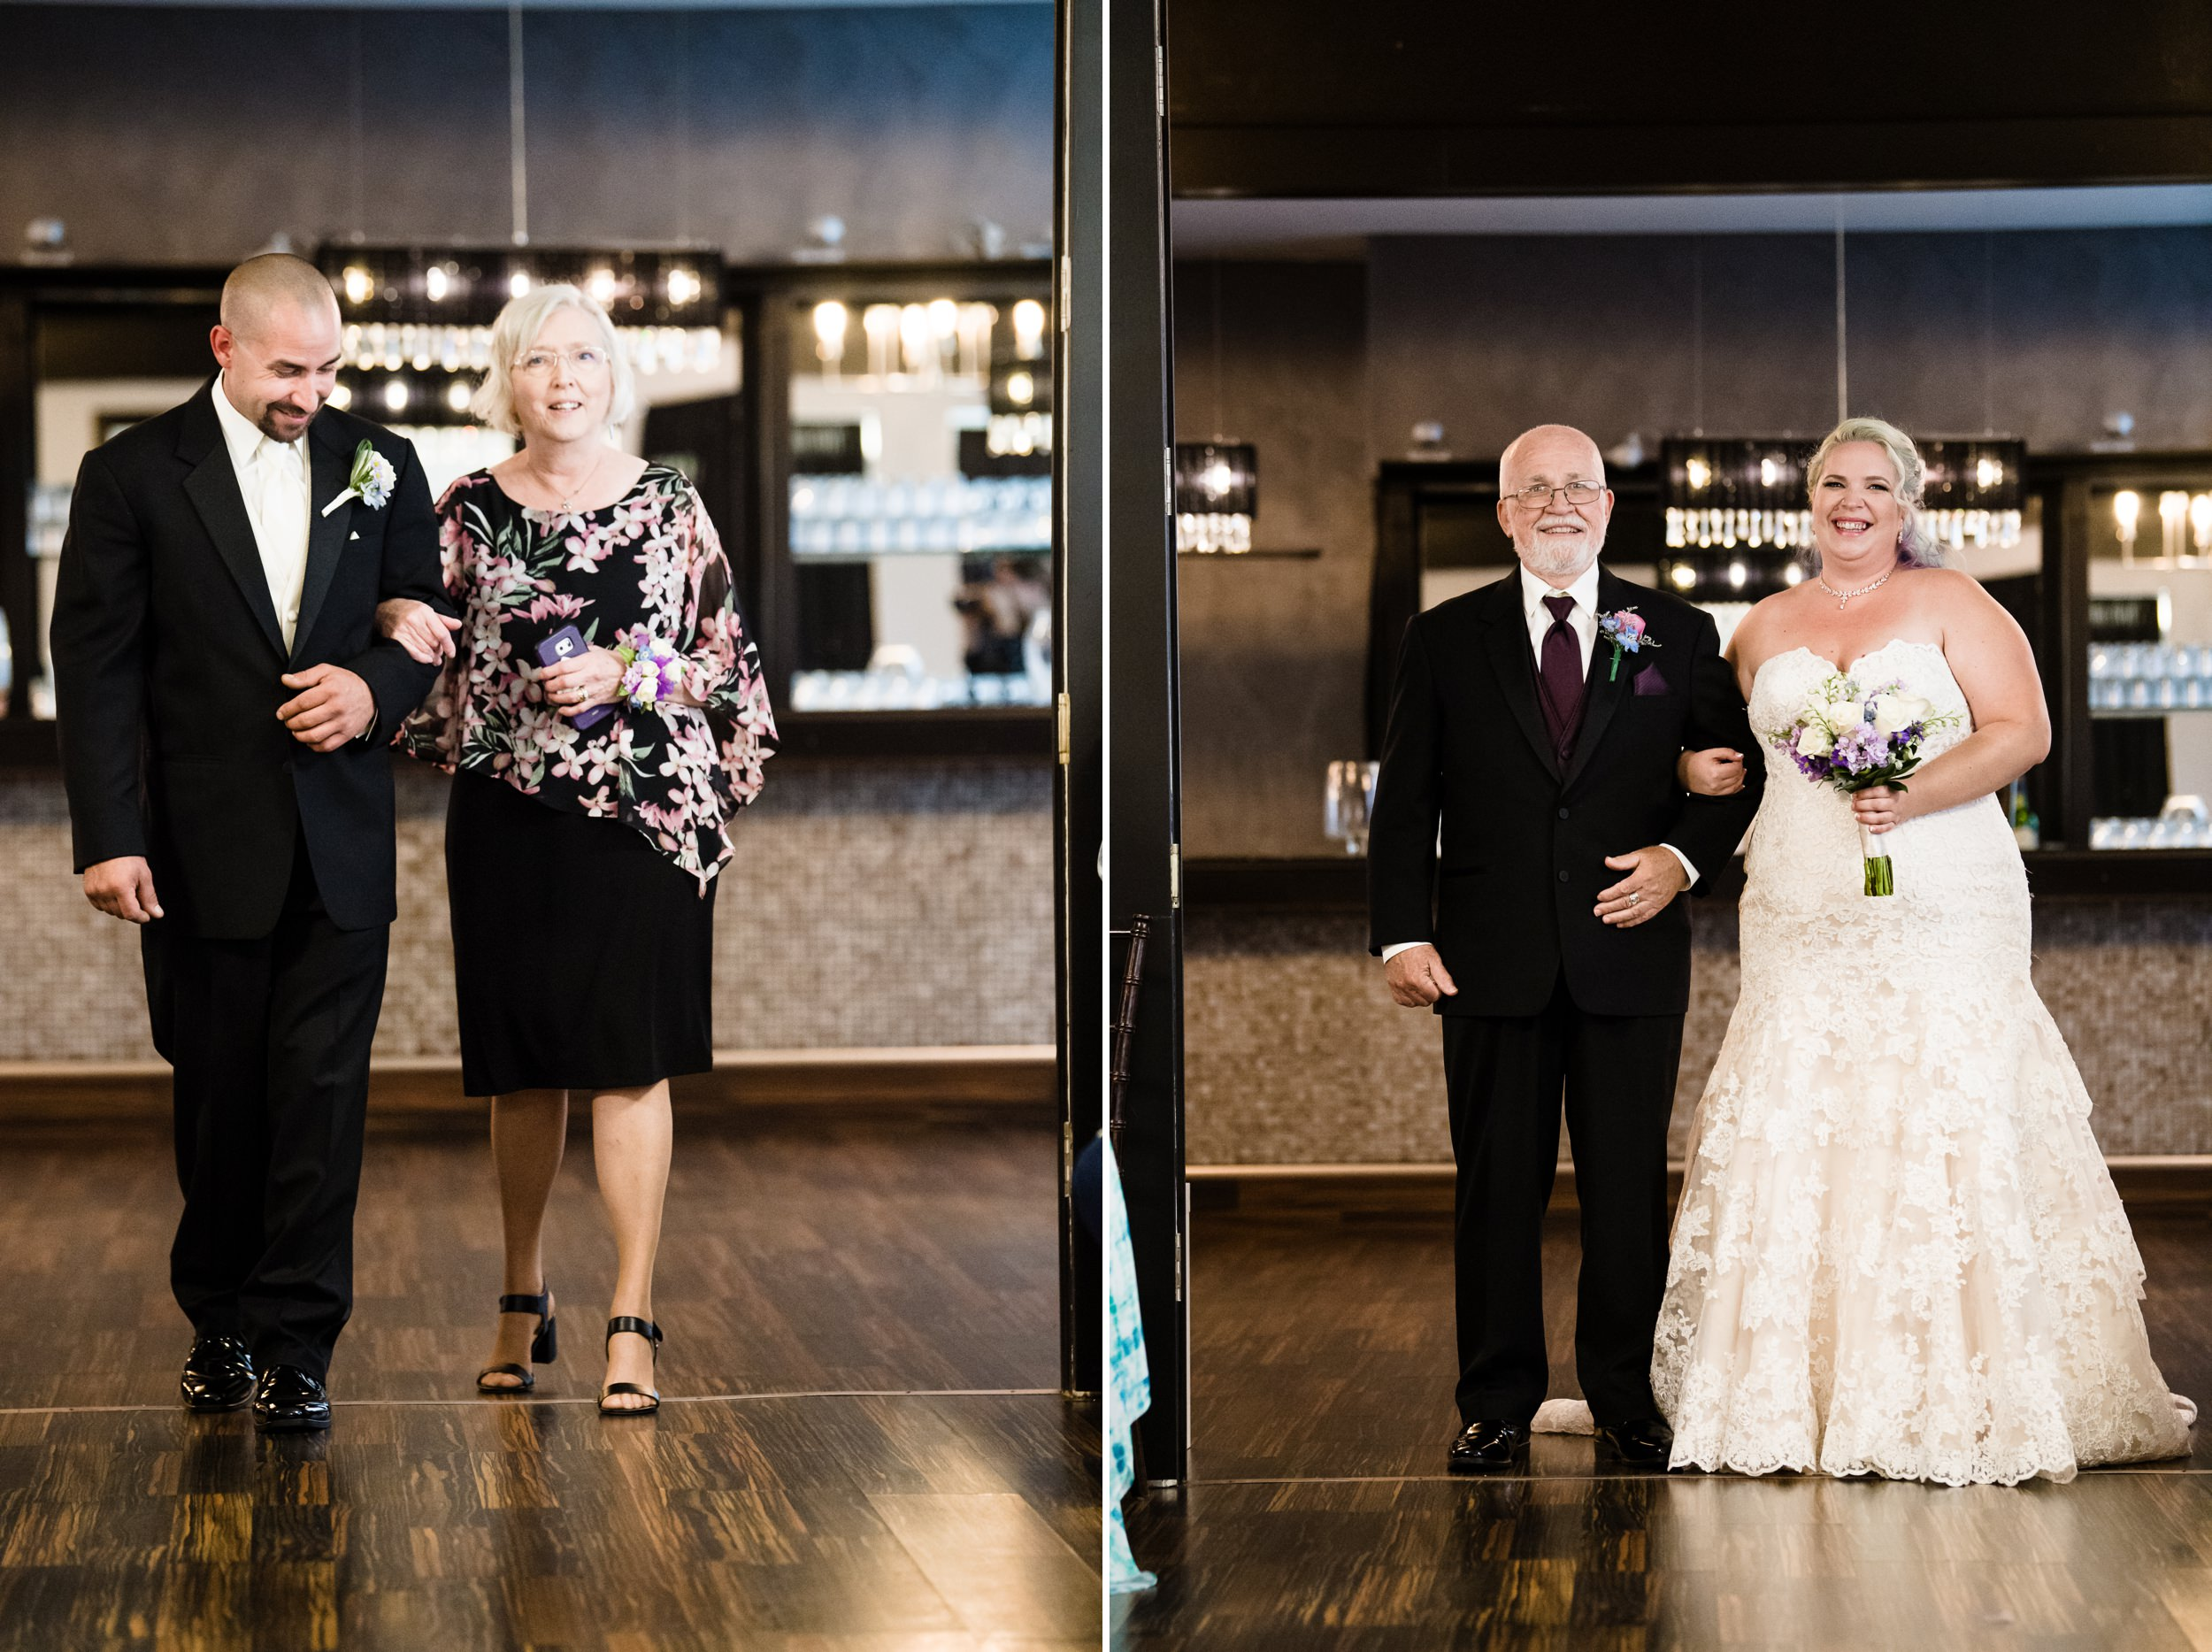 The bride and groom are all smiles as they enter the ceremony area at The Allure.